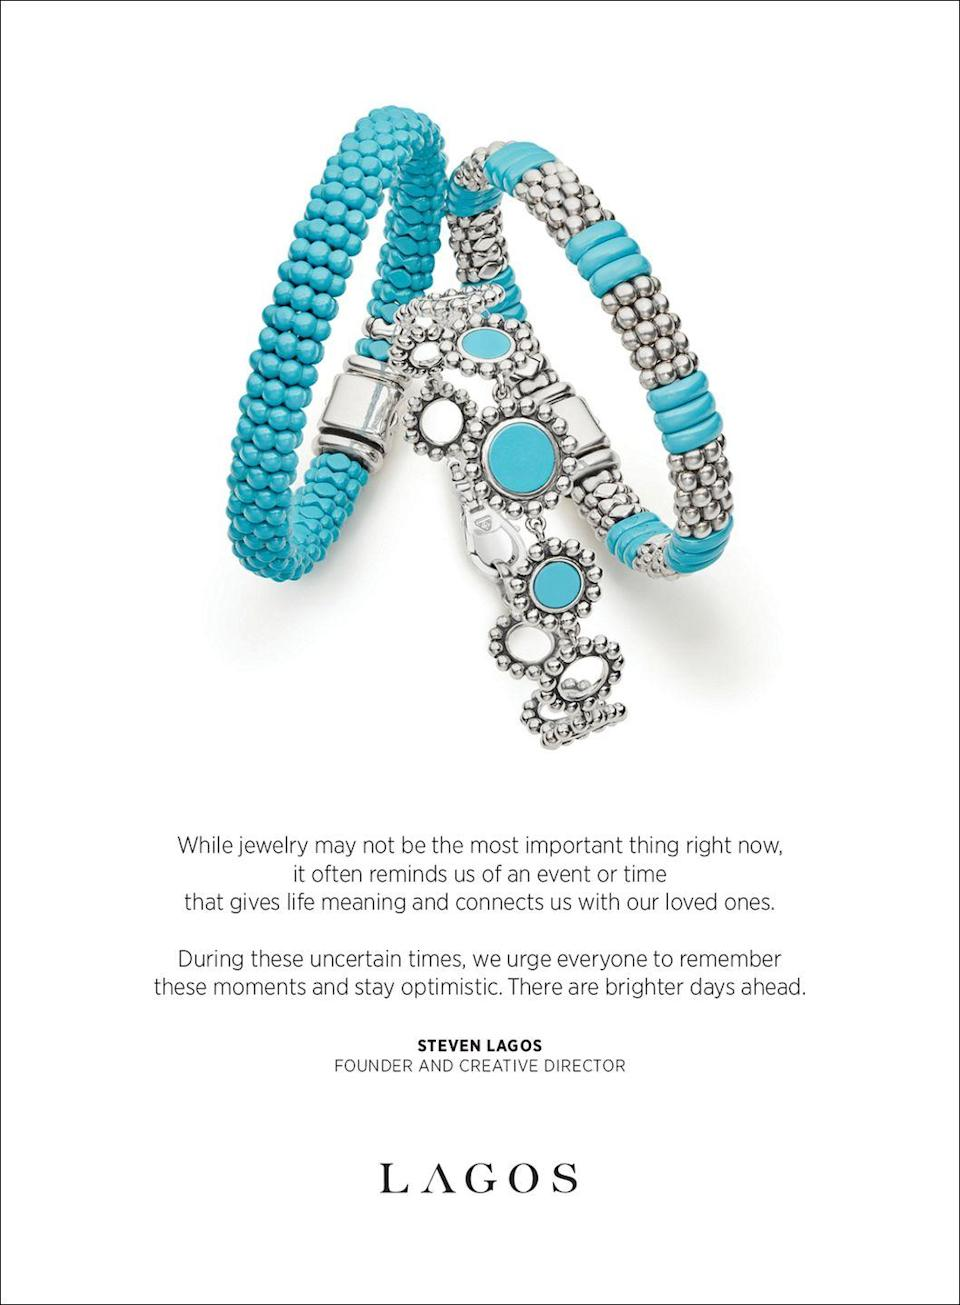 <p>While jewelry may not be the most important thing right now, </p><p>it often reminds us of an event or time </p><p>that gives life meaning and connects us with our loved ones. </p><p>During these uncertain times, we urge everyone to remember these moments and stay optimistic. There are brighter days ahead. </p><p><em>—Steven Lagos, founder and creative director </em></p>